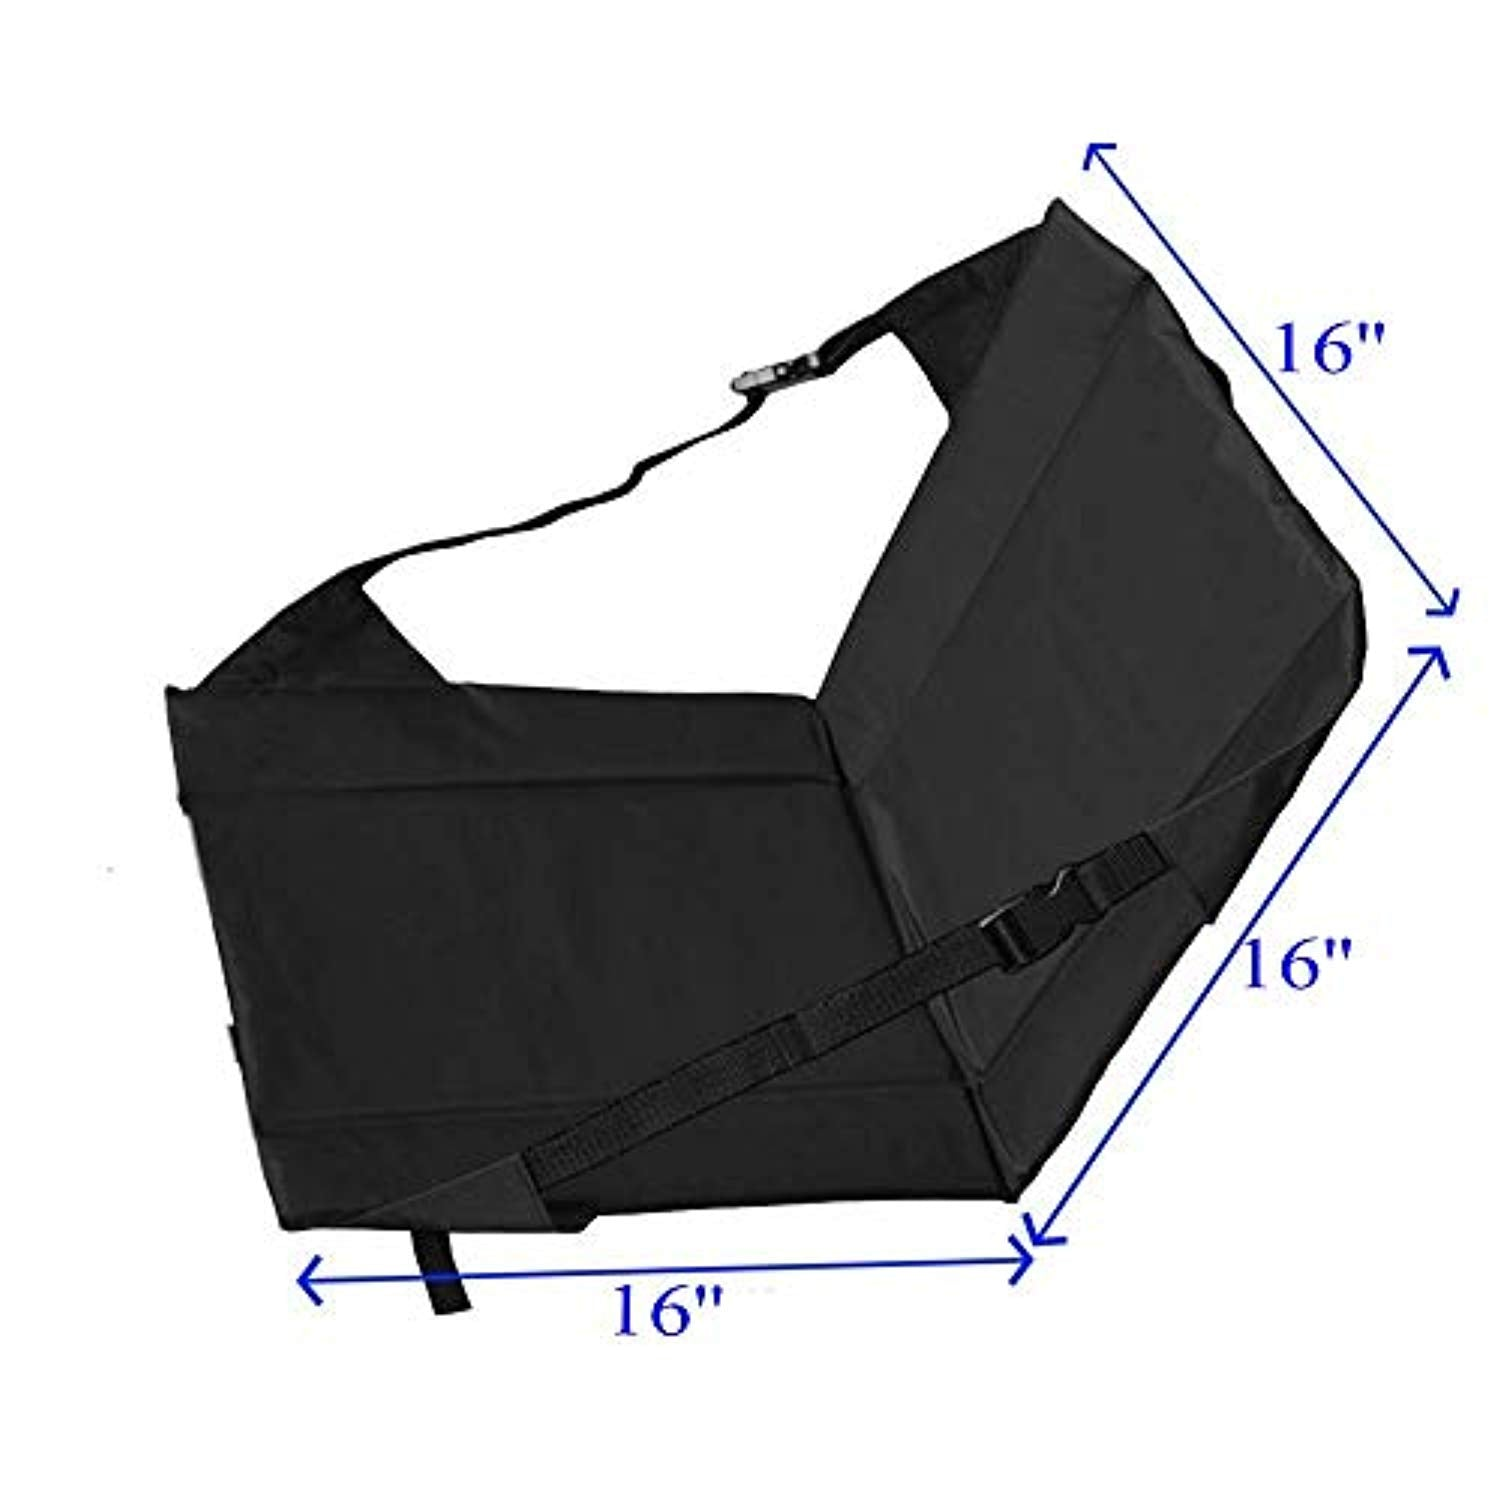 Ationgle Stadium Seat Portable Oxford Folding Chair Bleacher Padded Cushion Seat Ultralight Durable Outdoor Seat for Hiking, Beach and Camping